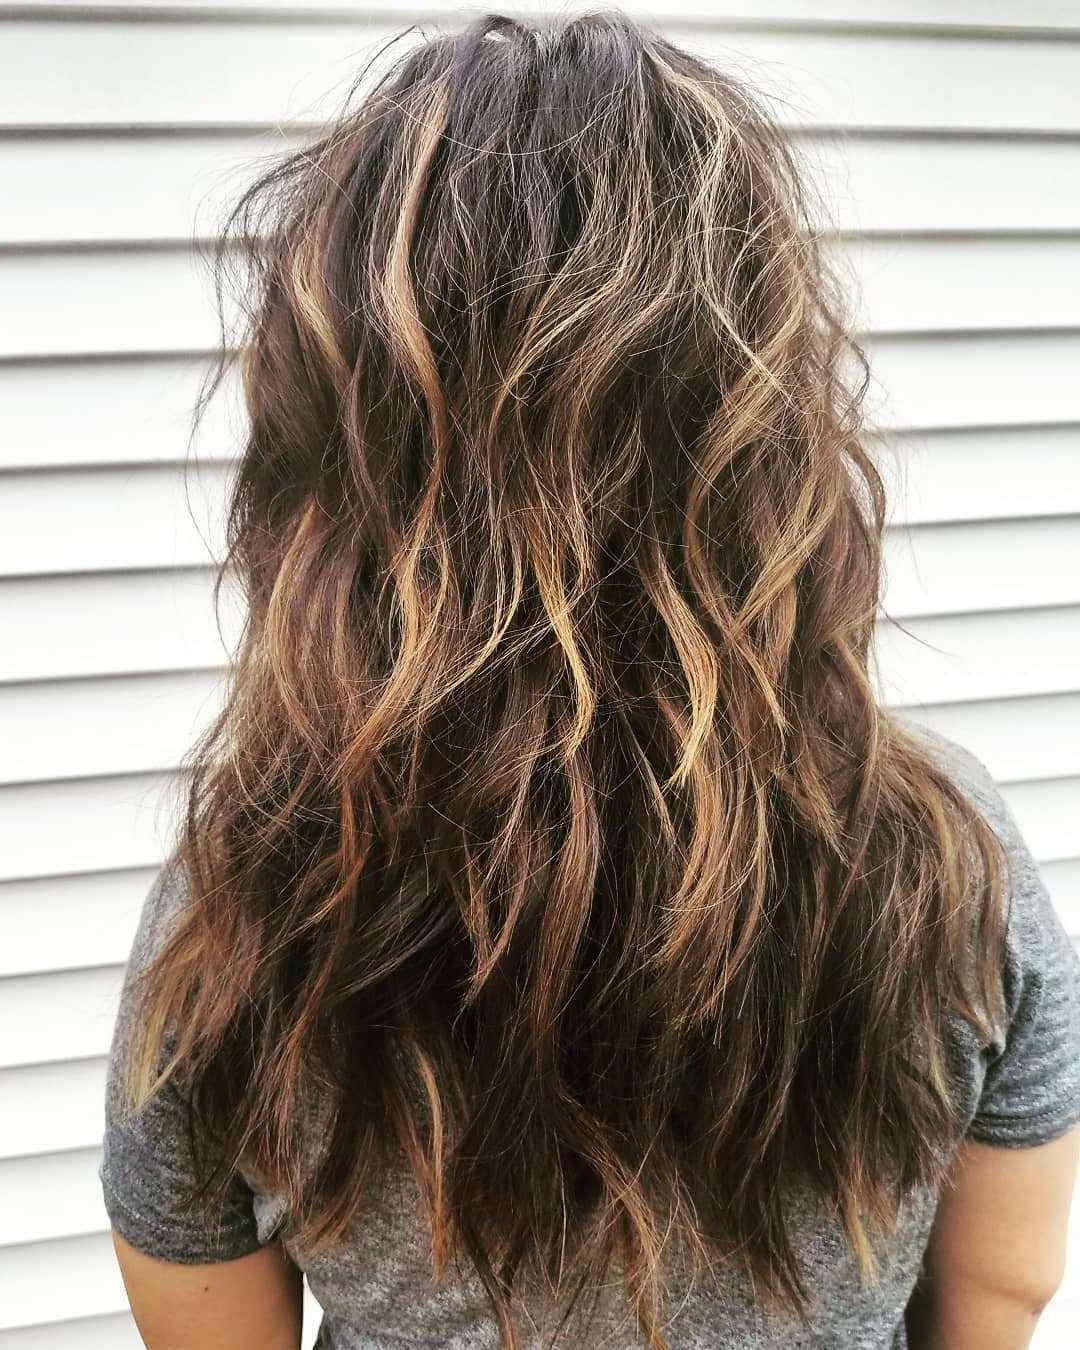 60 Lovely Long Shag Haircuts For Effortless Stylish Looks With Longer Waves Shag Haircuts (View 12 of 20)